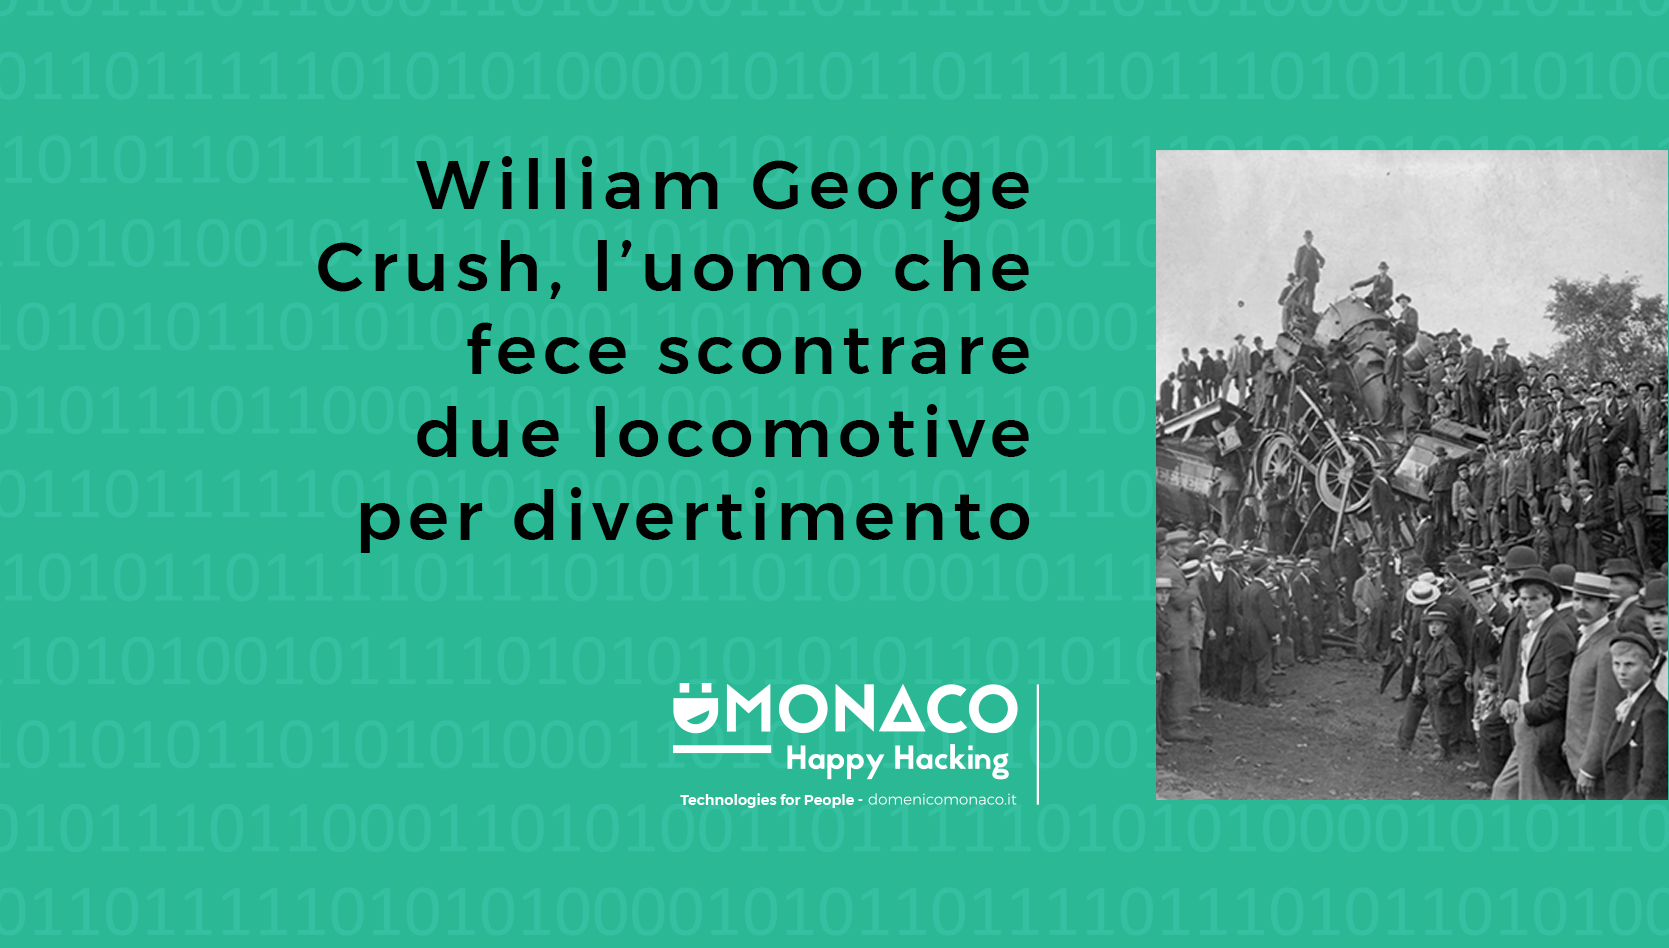 William George Crush, l'uomo che fece scontrare due locomotive per divertimento